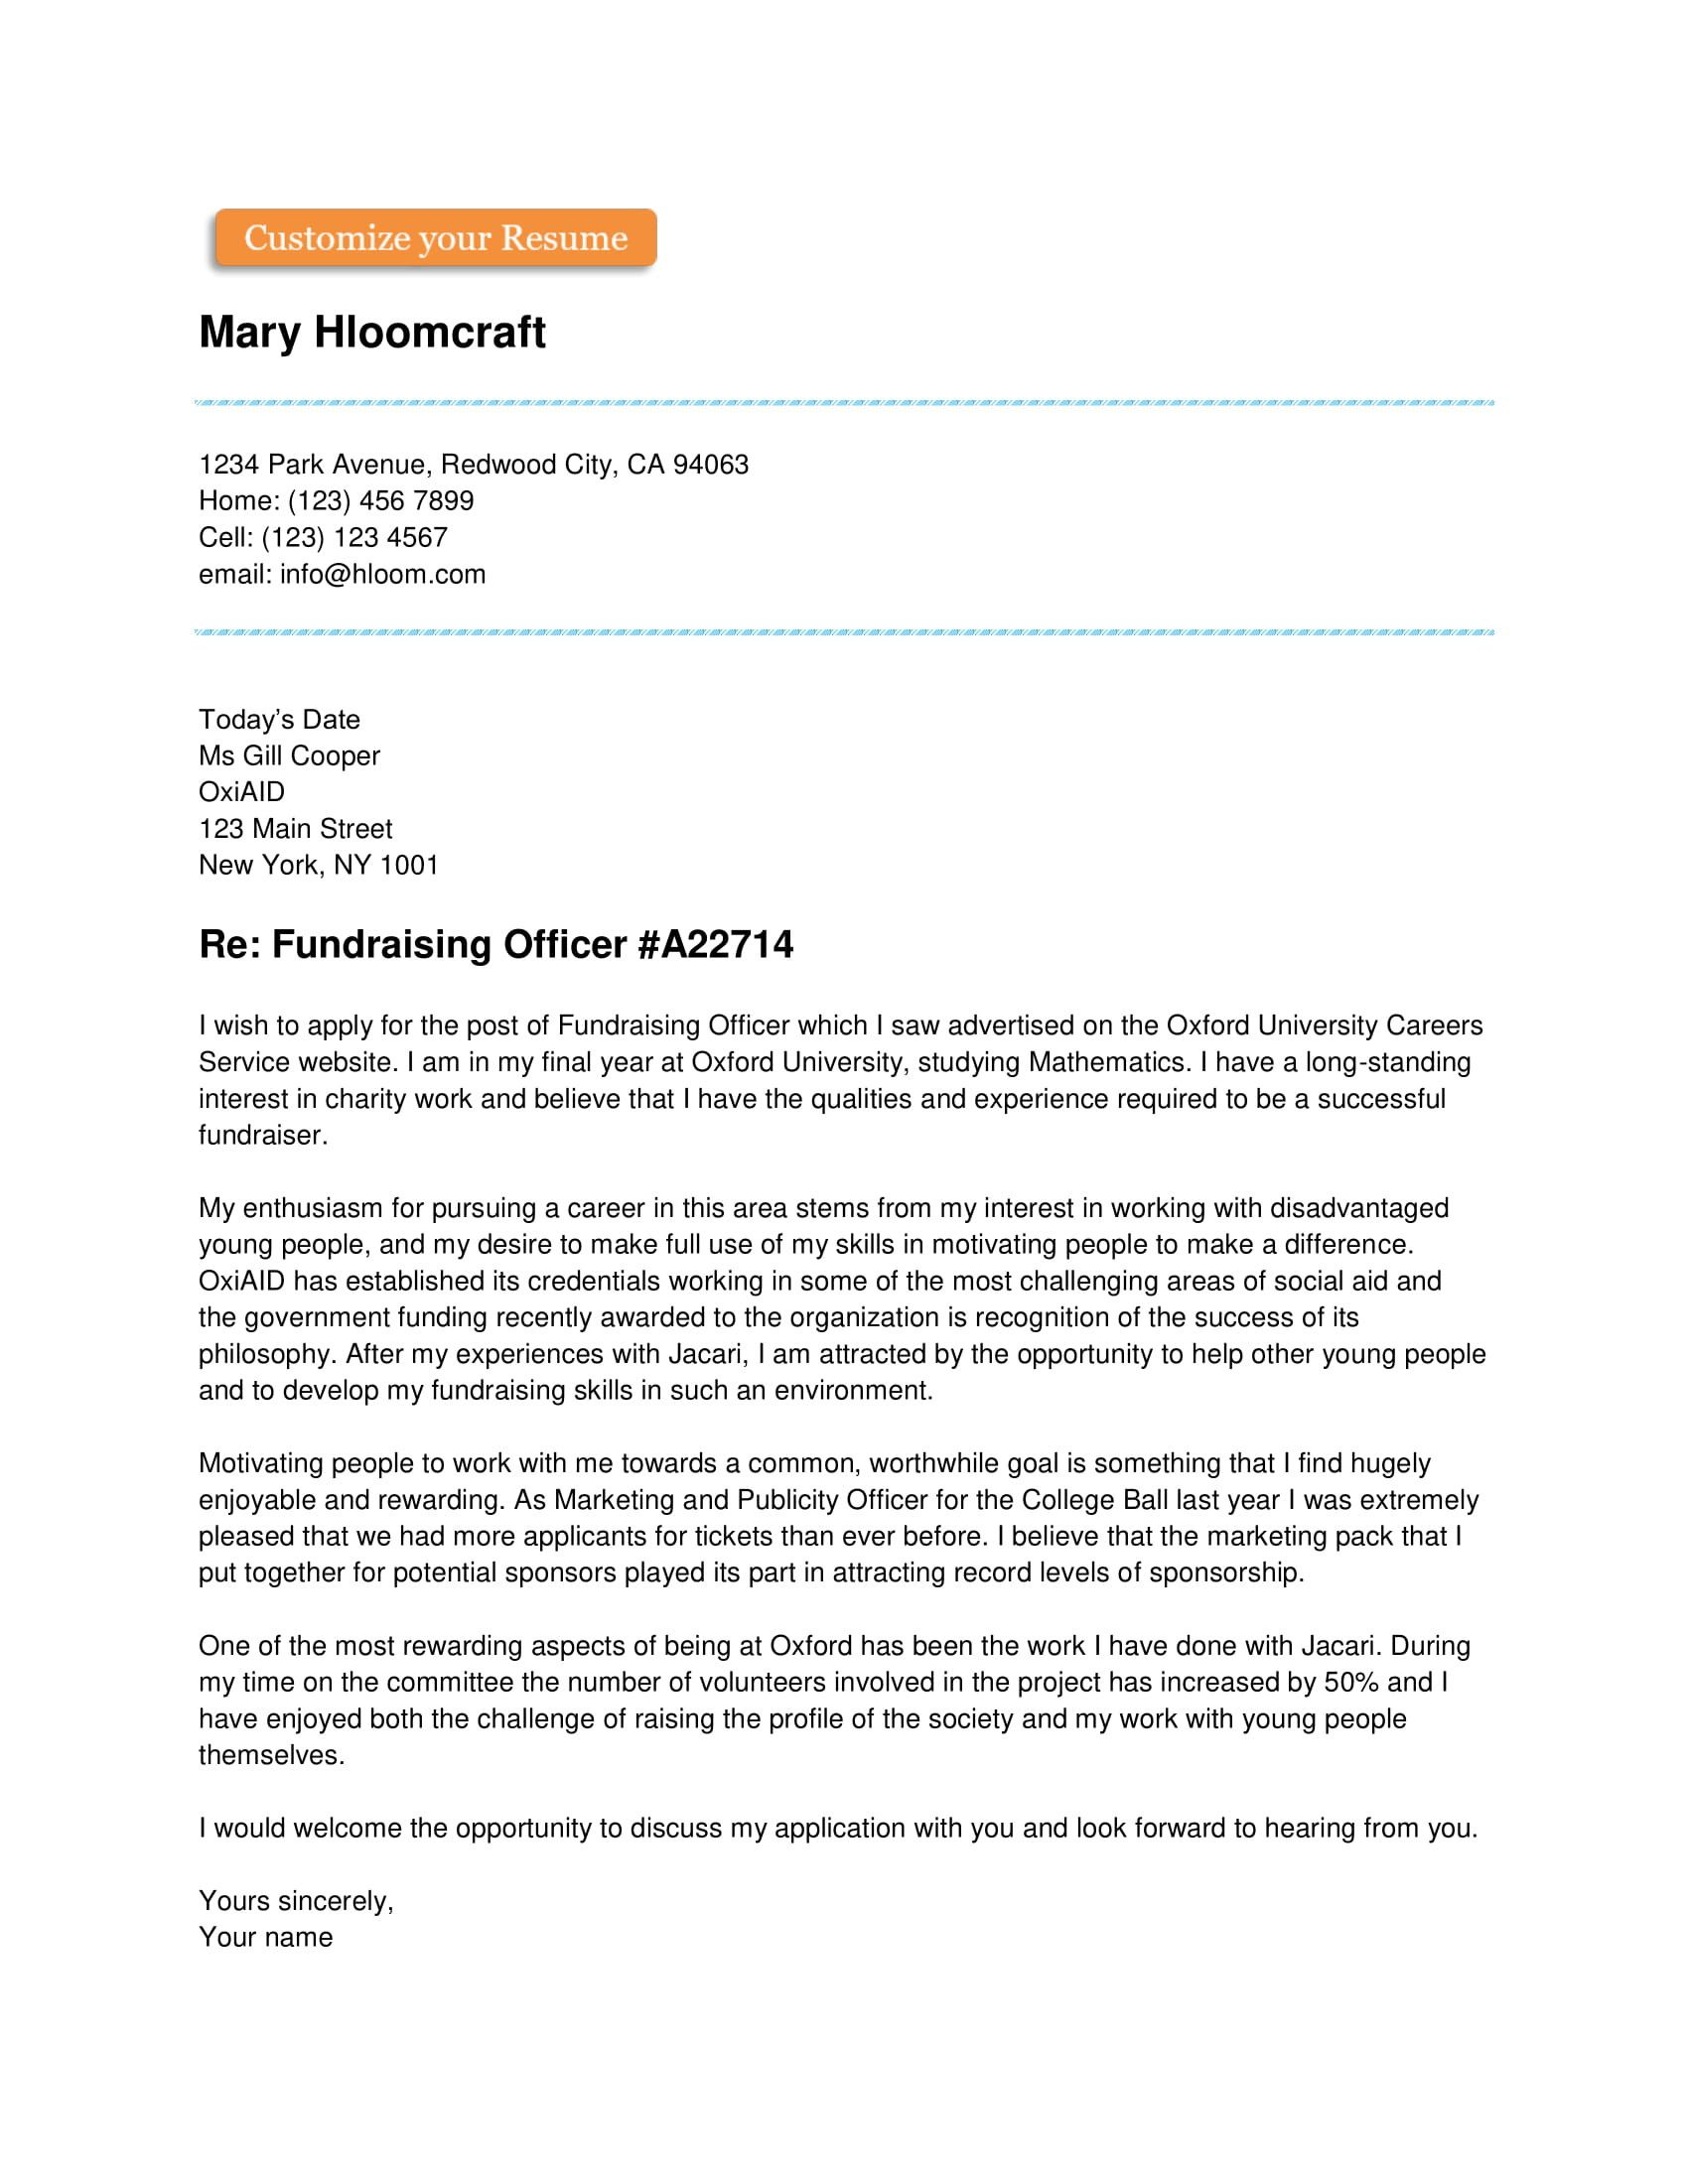 Simple Cover Letter for Resume | Cover letter template ...